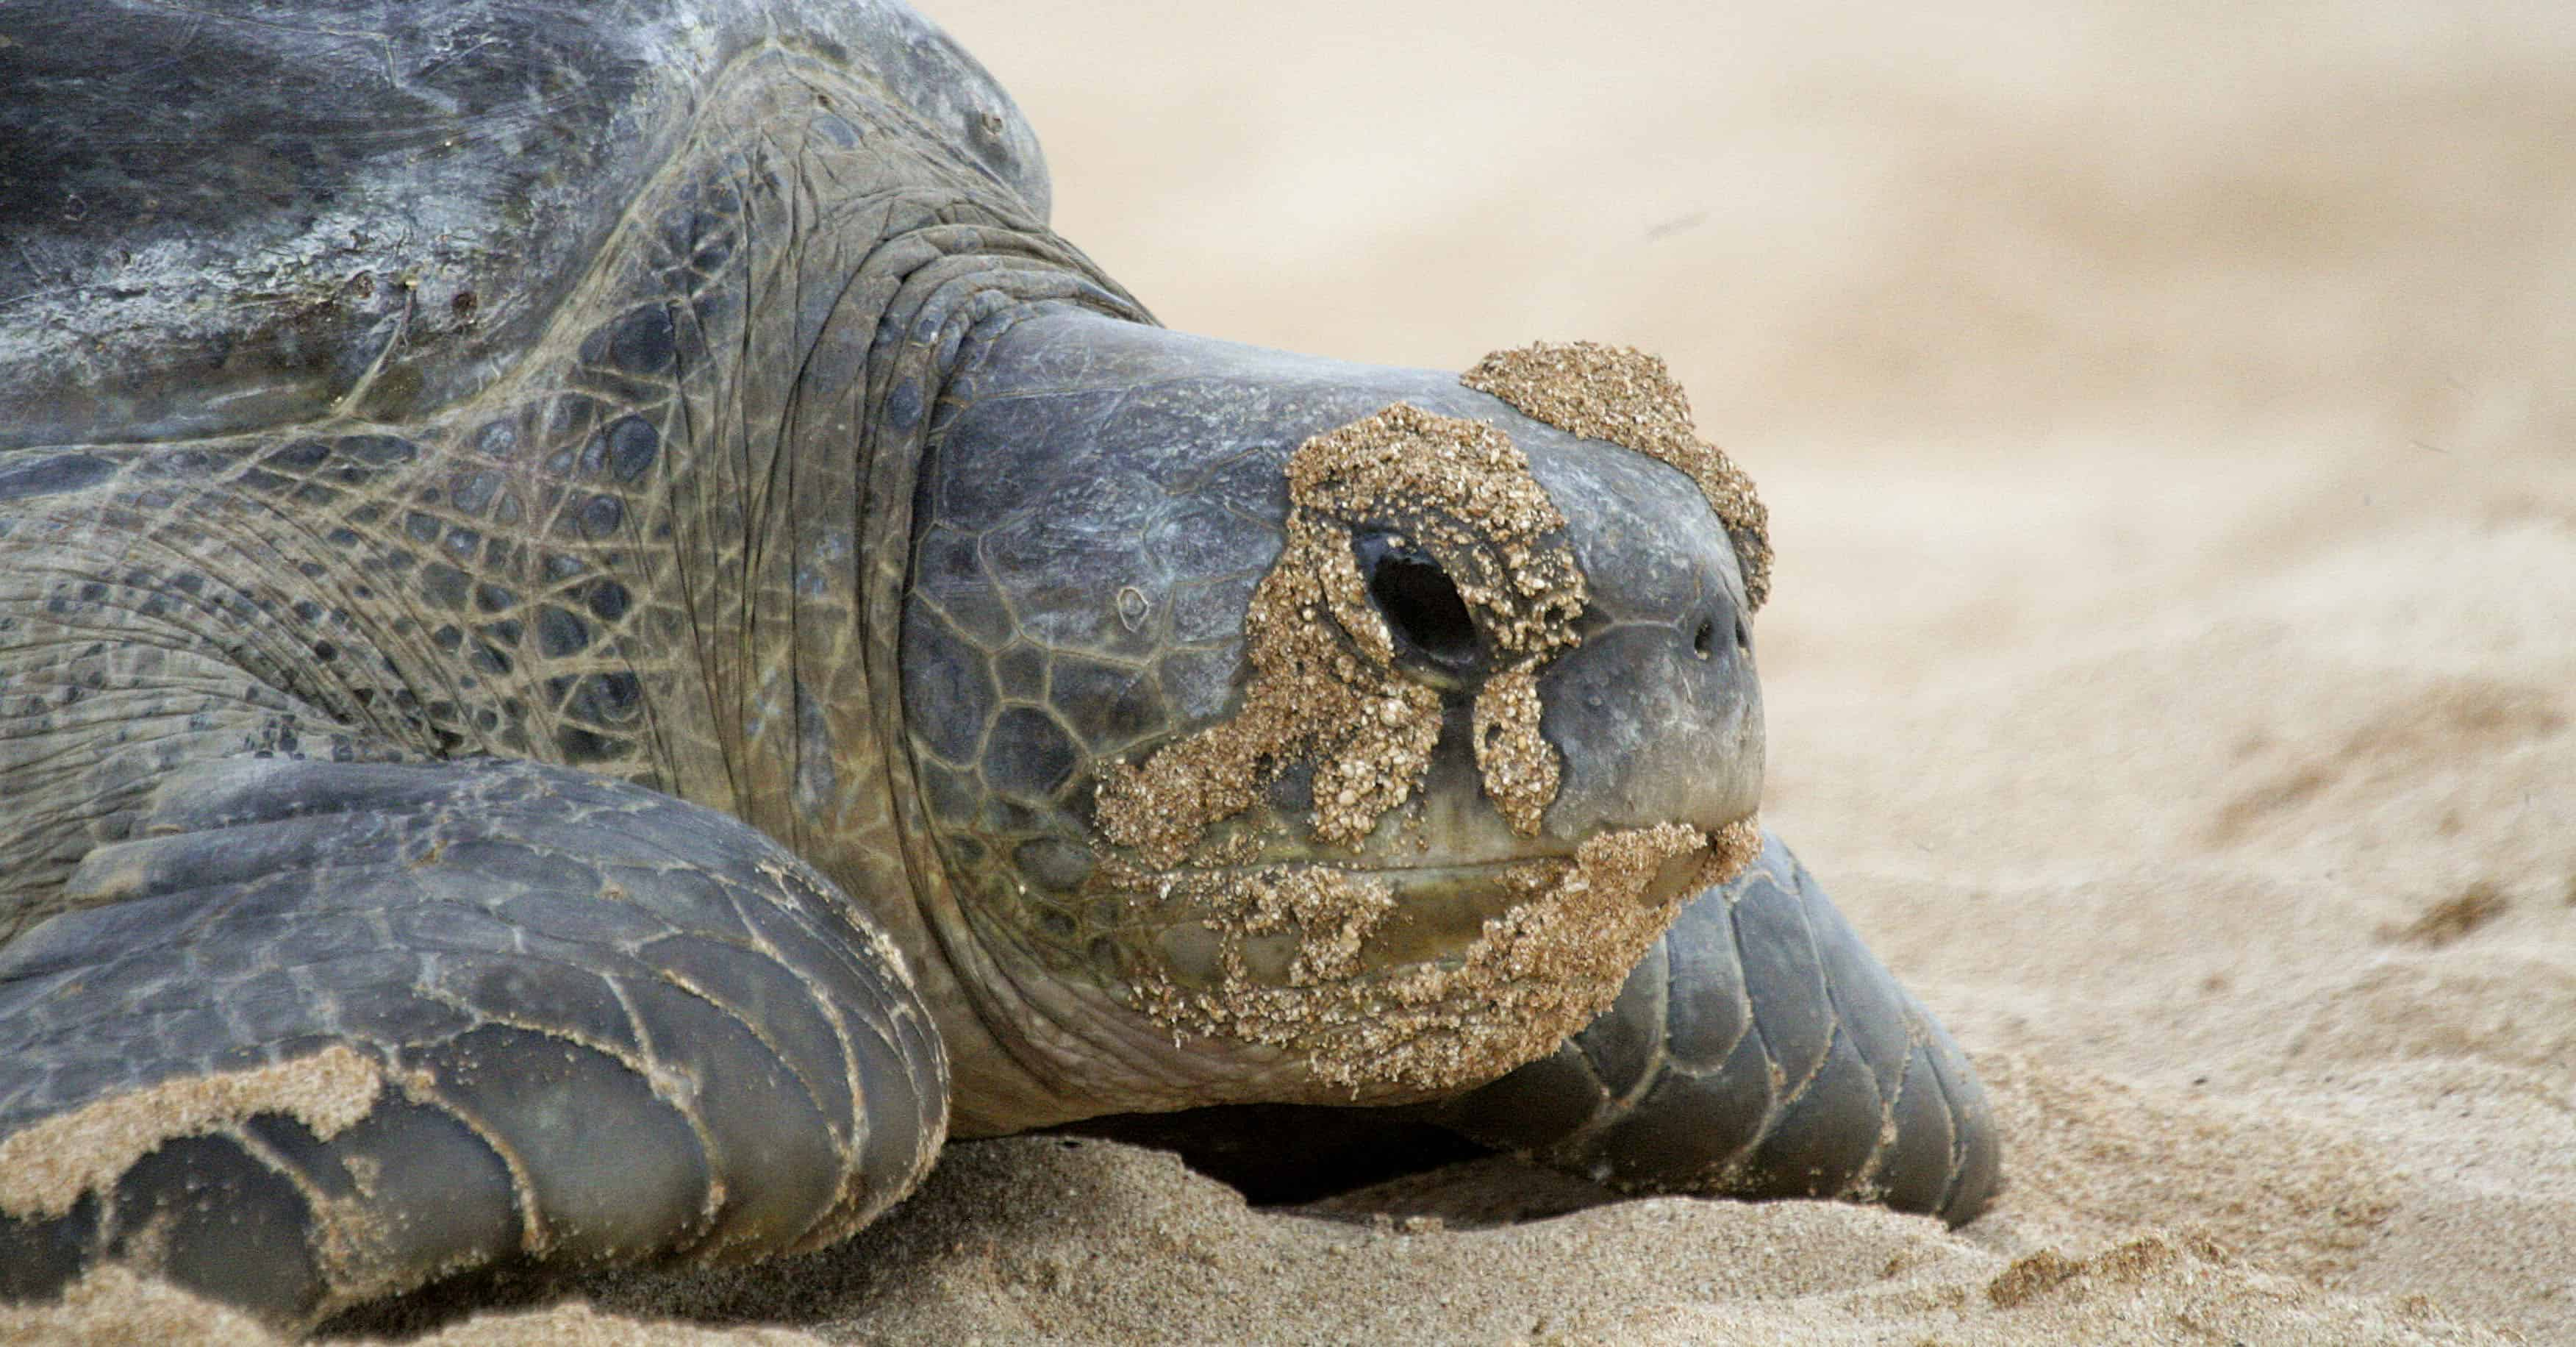 Green turtle on Ascension Island; Copyright: Dr Mike Pienkowski